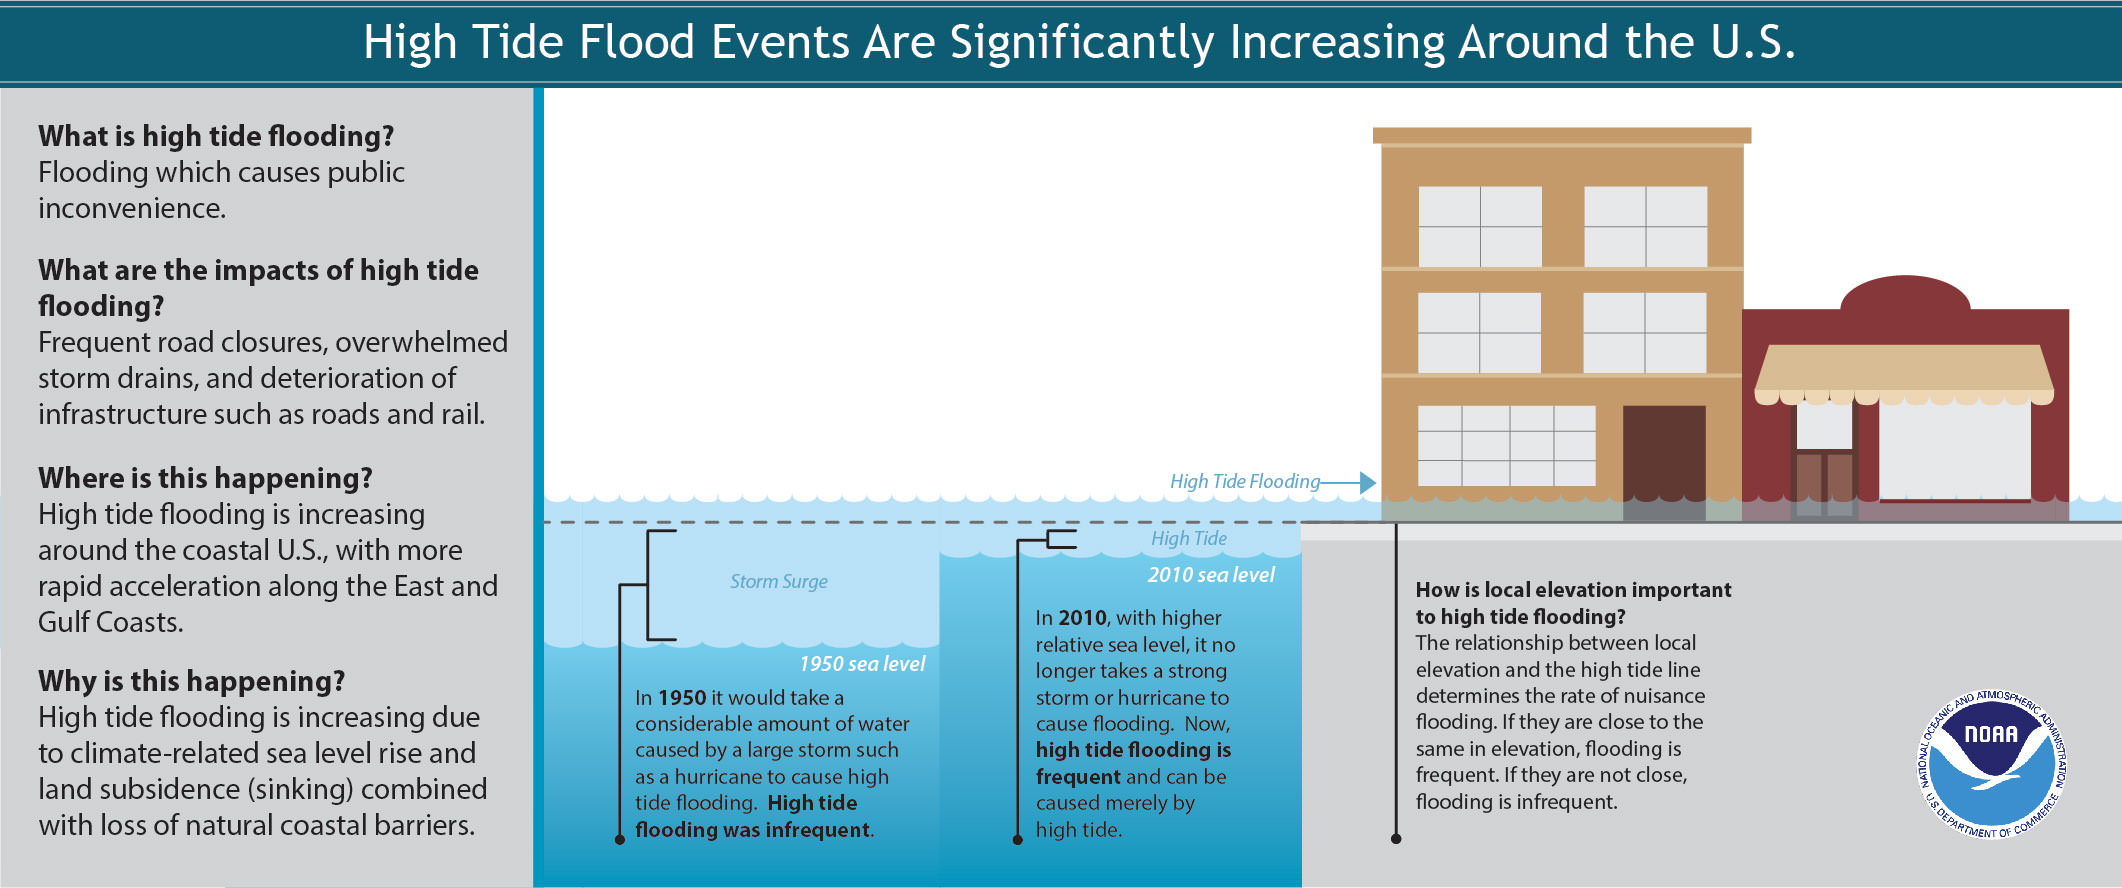 high tide flooding events have increased around the U.S., but especially off the East Coast.